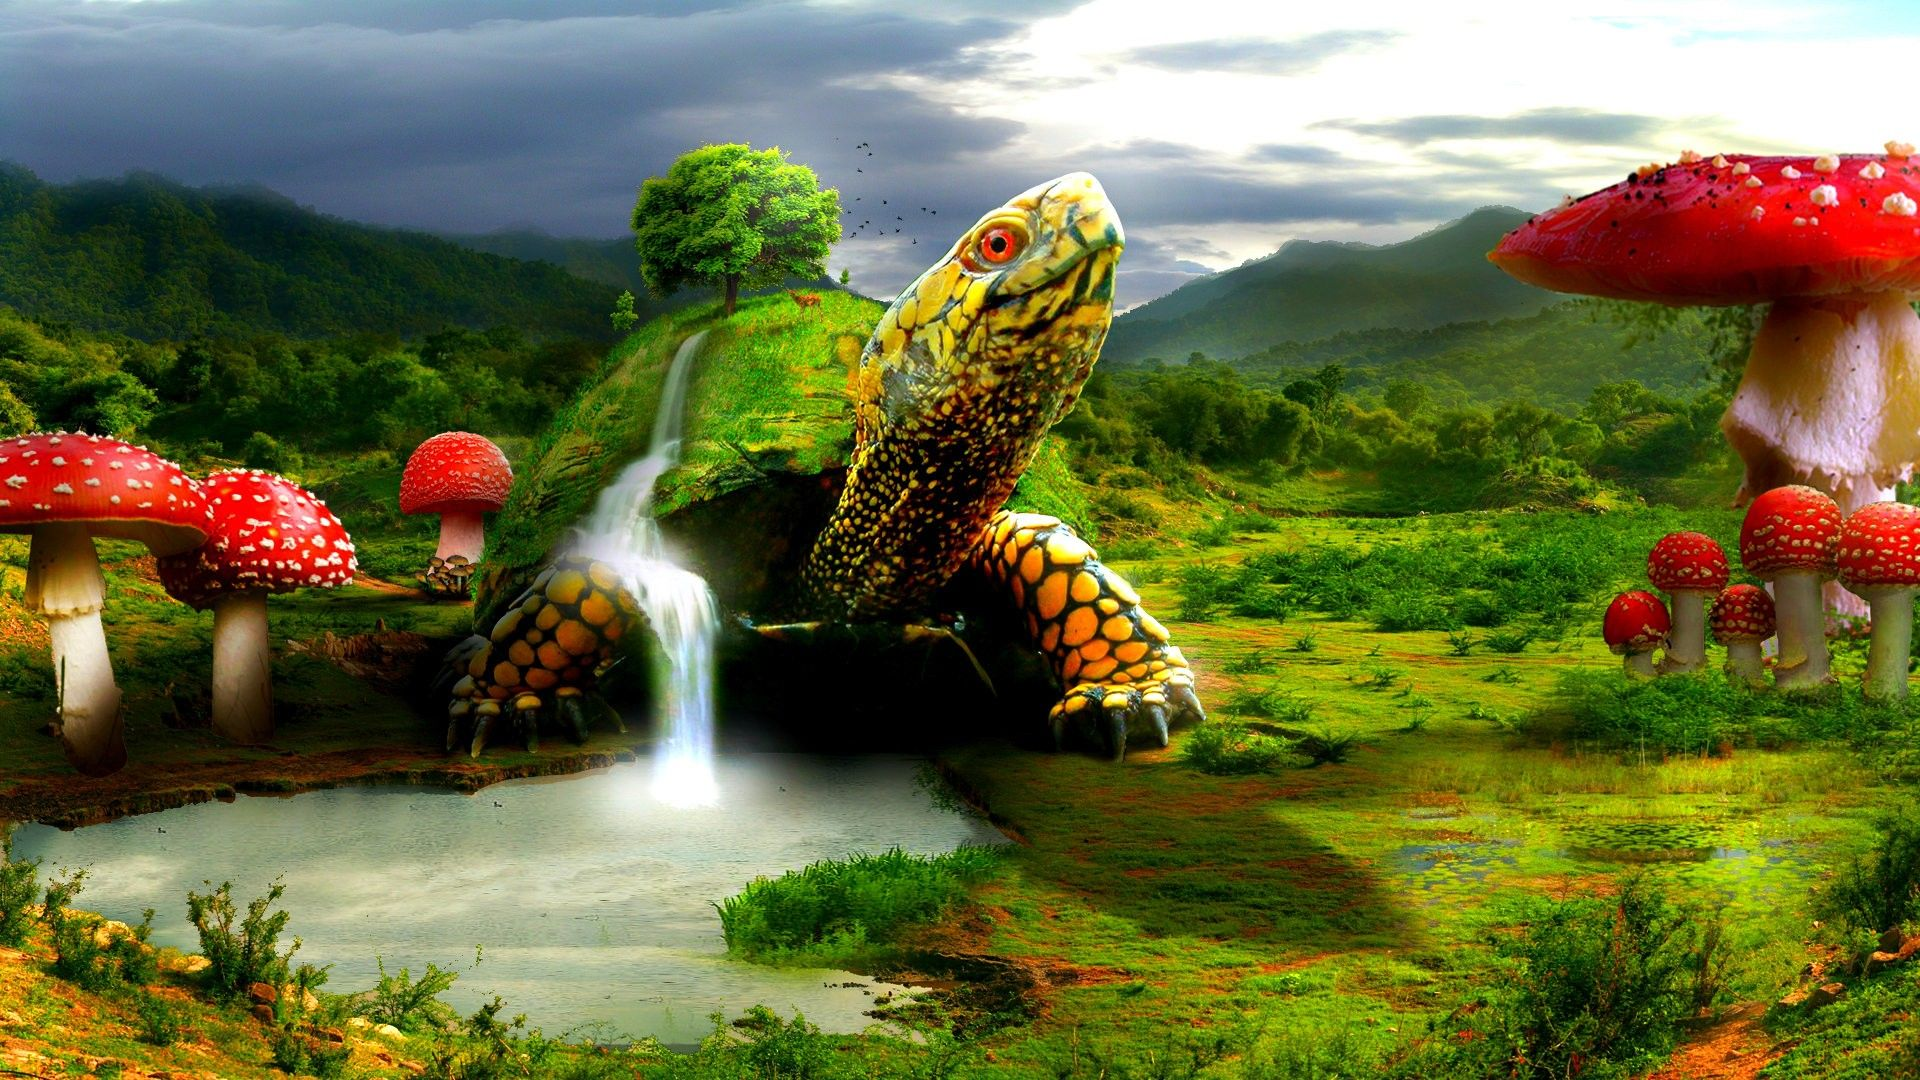 1920x1080 Abstract Turtle HD Wallpaper HD Wallpapers Desktop Images ...